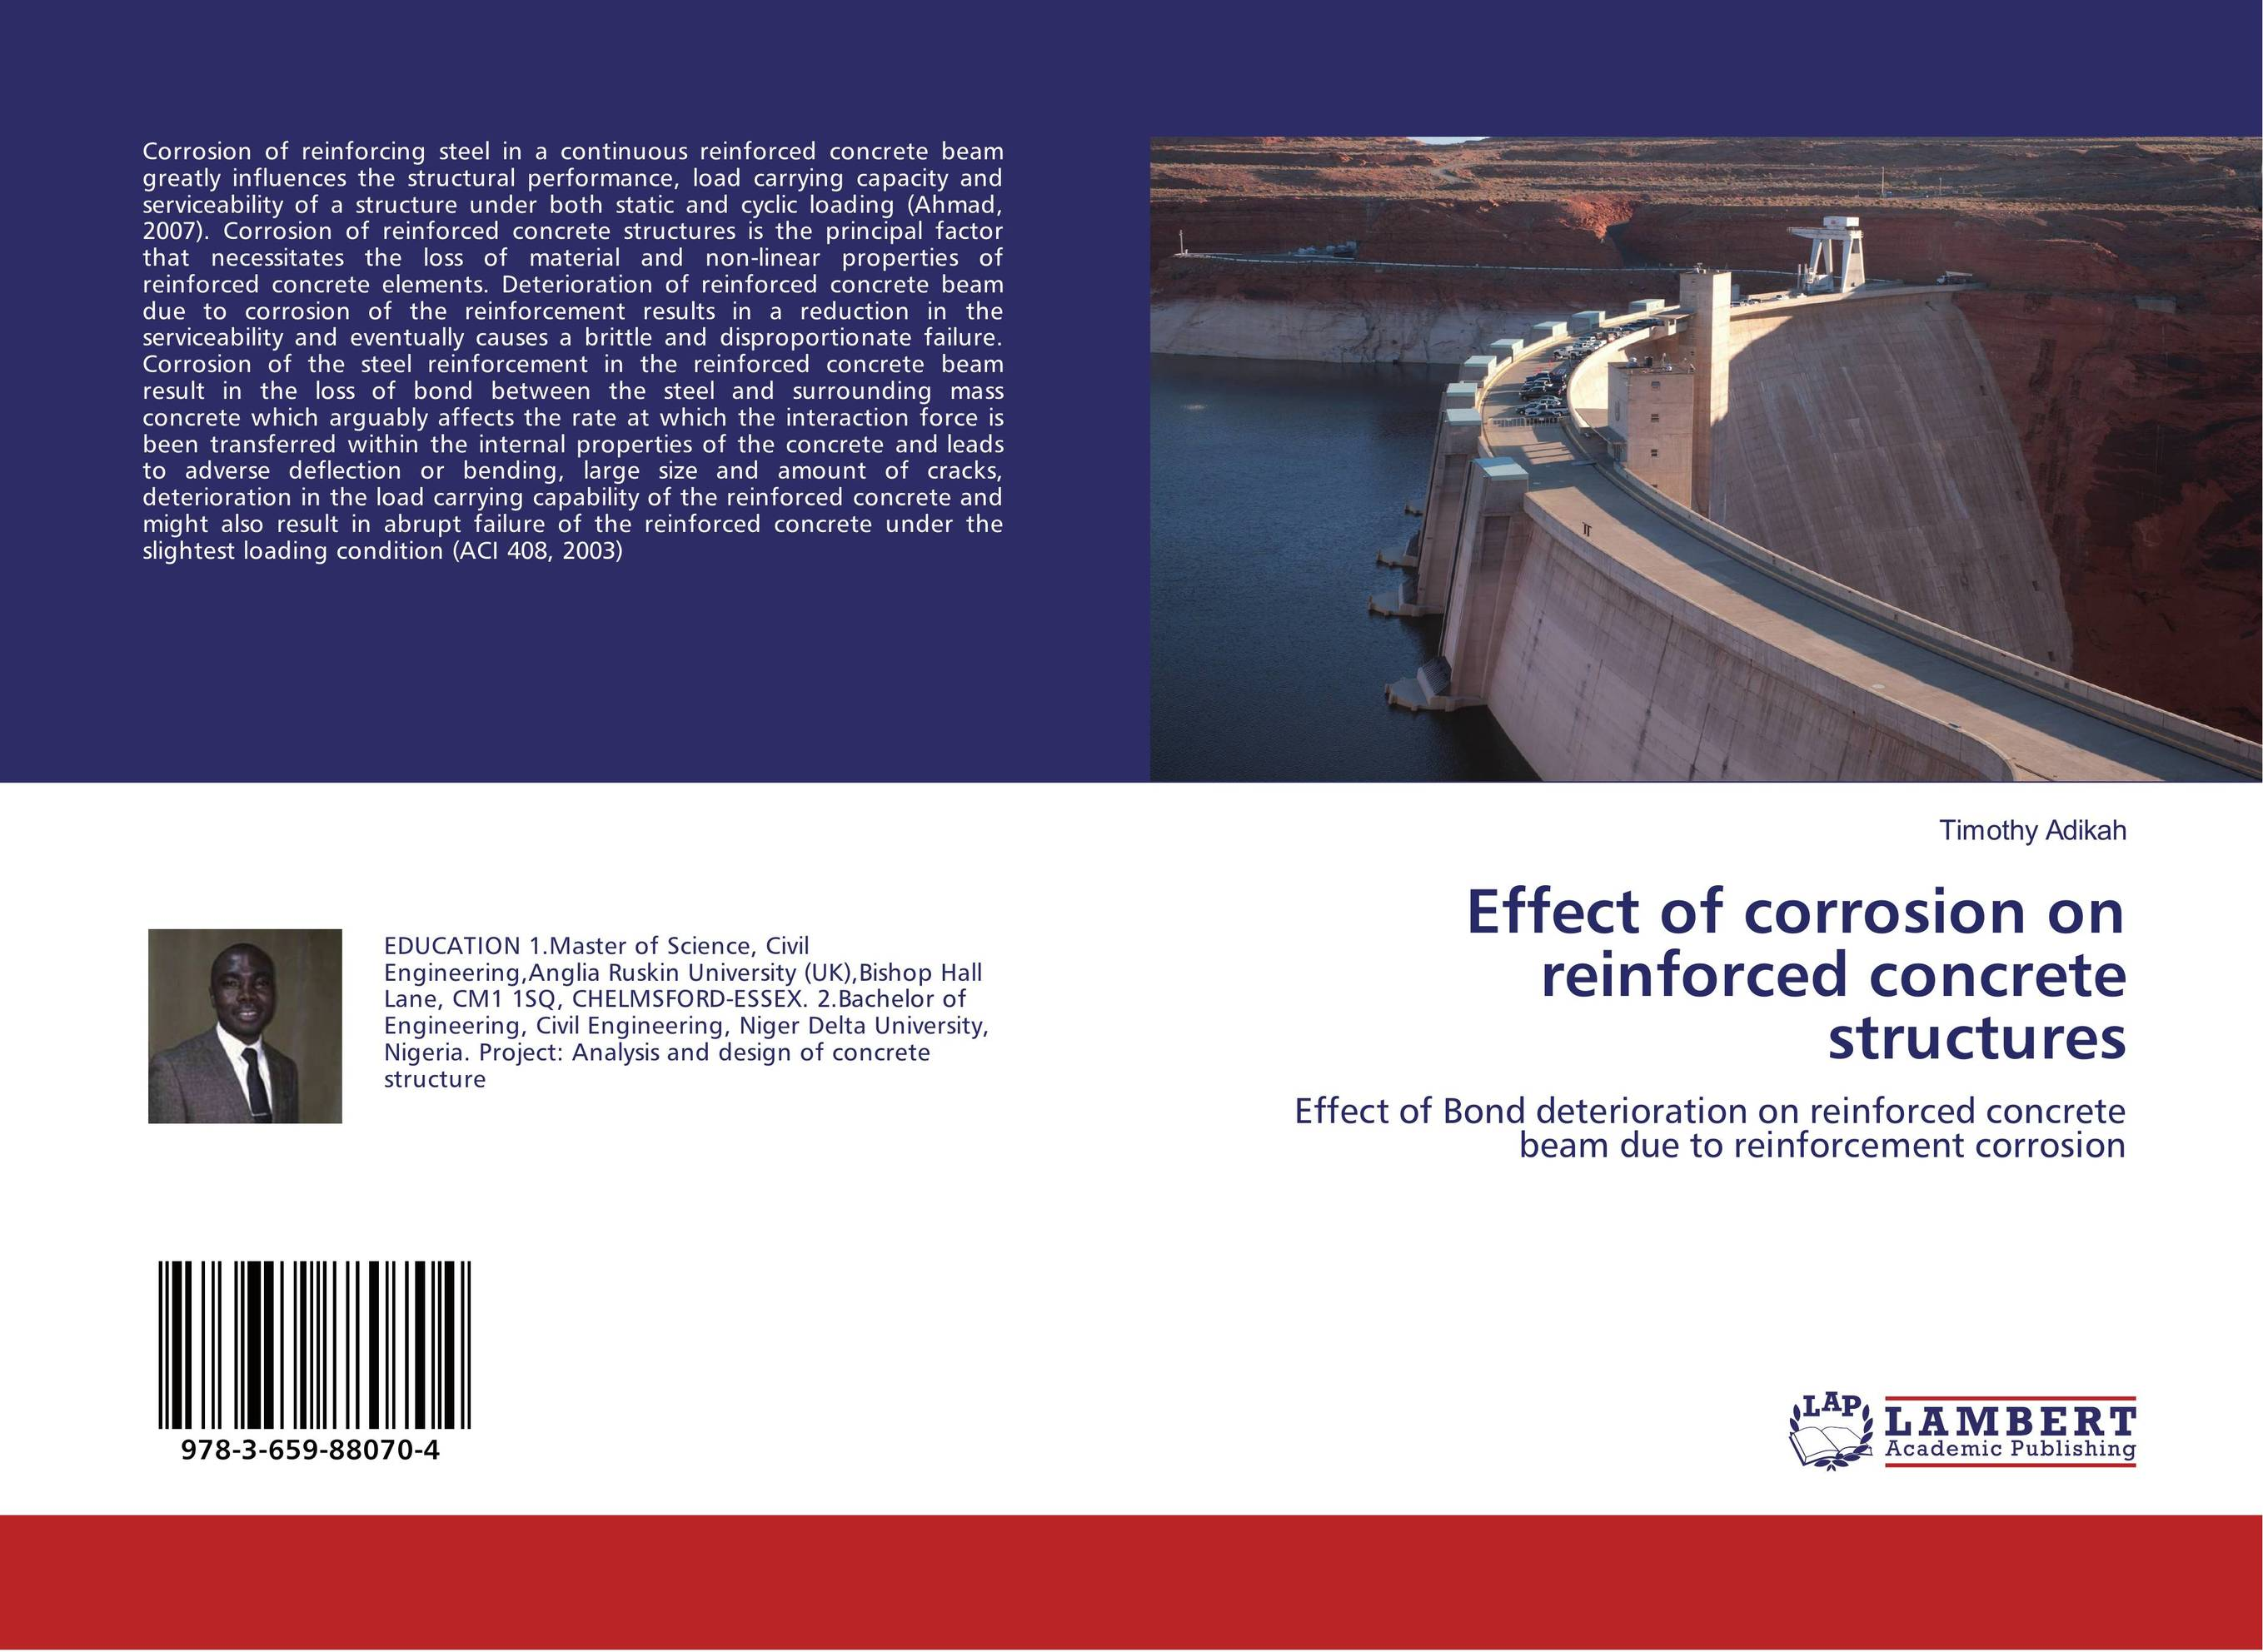 Effect of corrosion on reinforced concrete structures innovative design philosophy for reinforced concrete structures